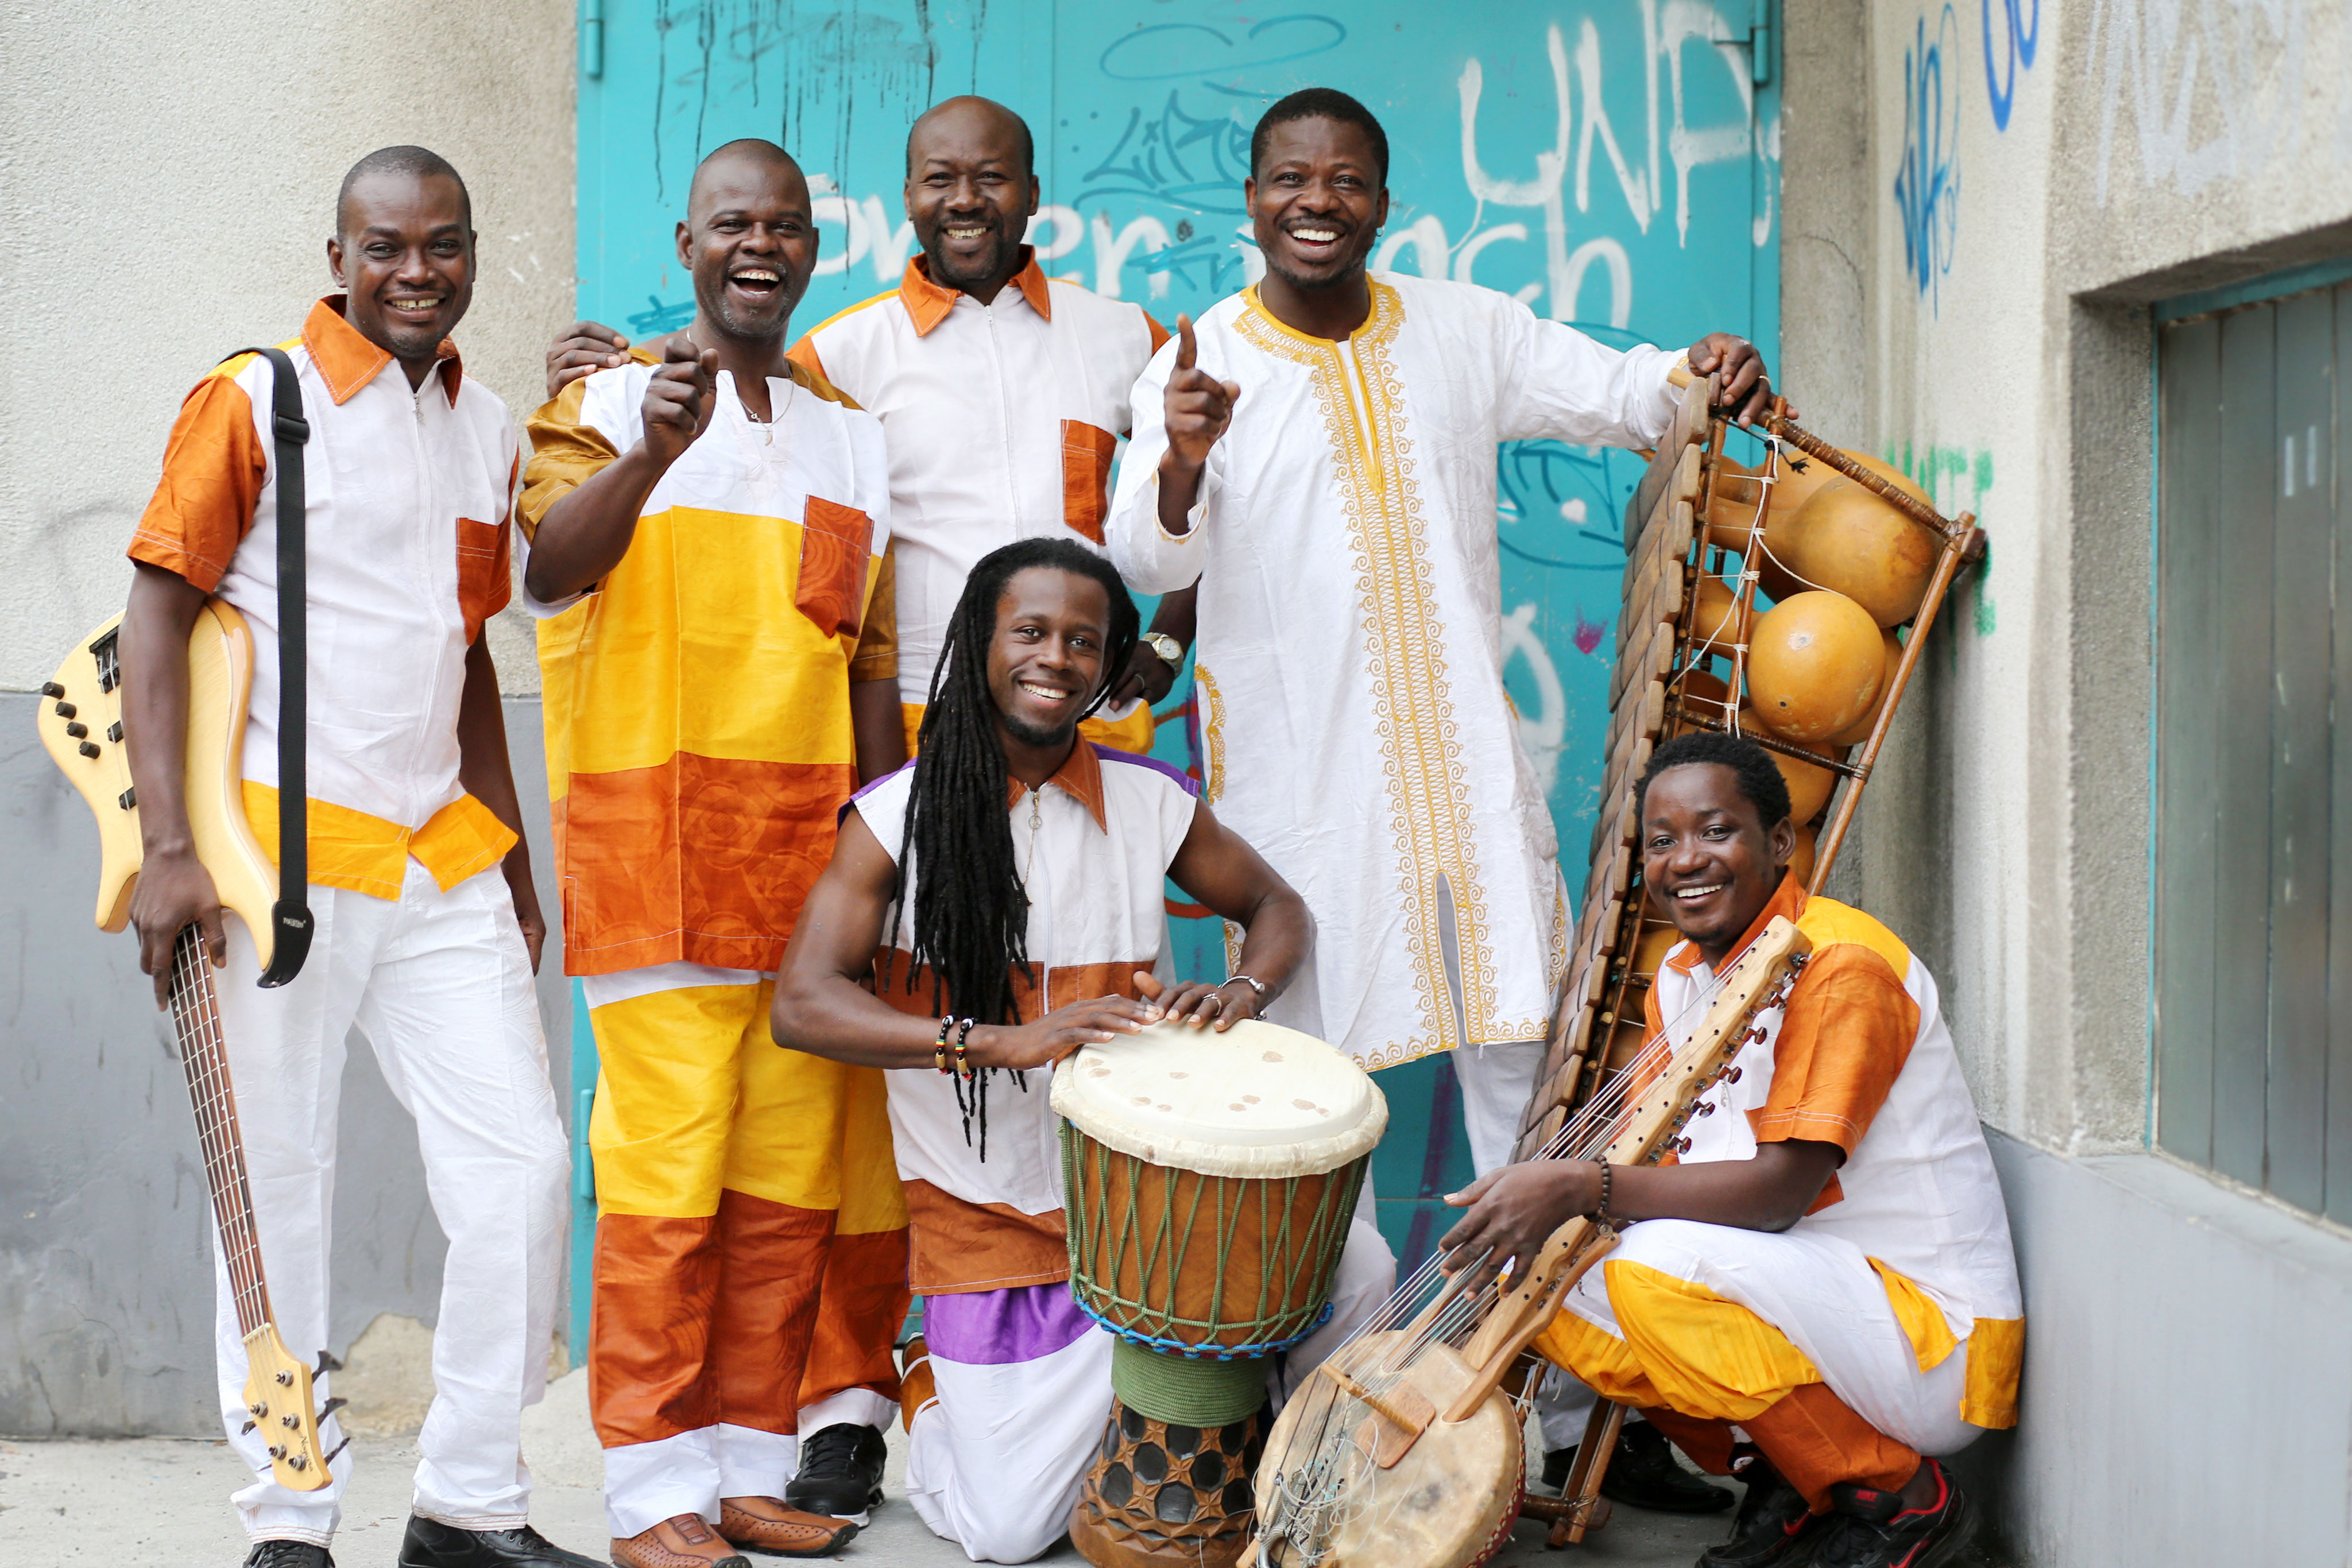 black musics african origins - HD 4096×2731